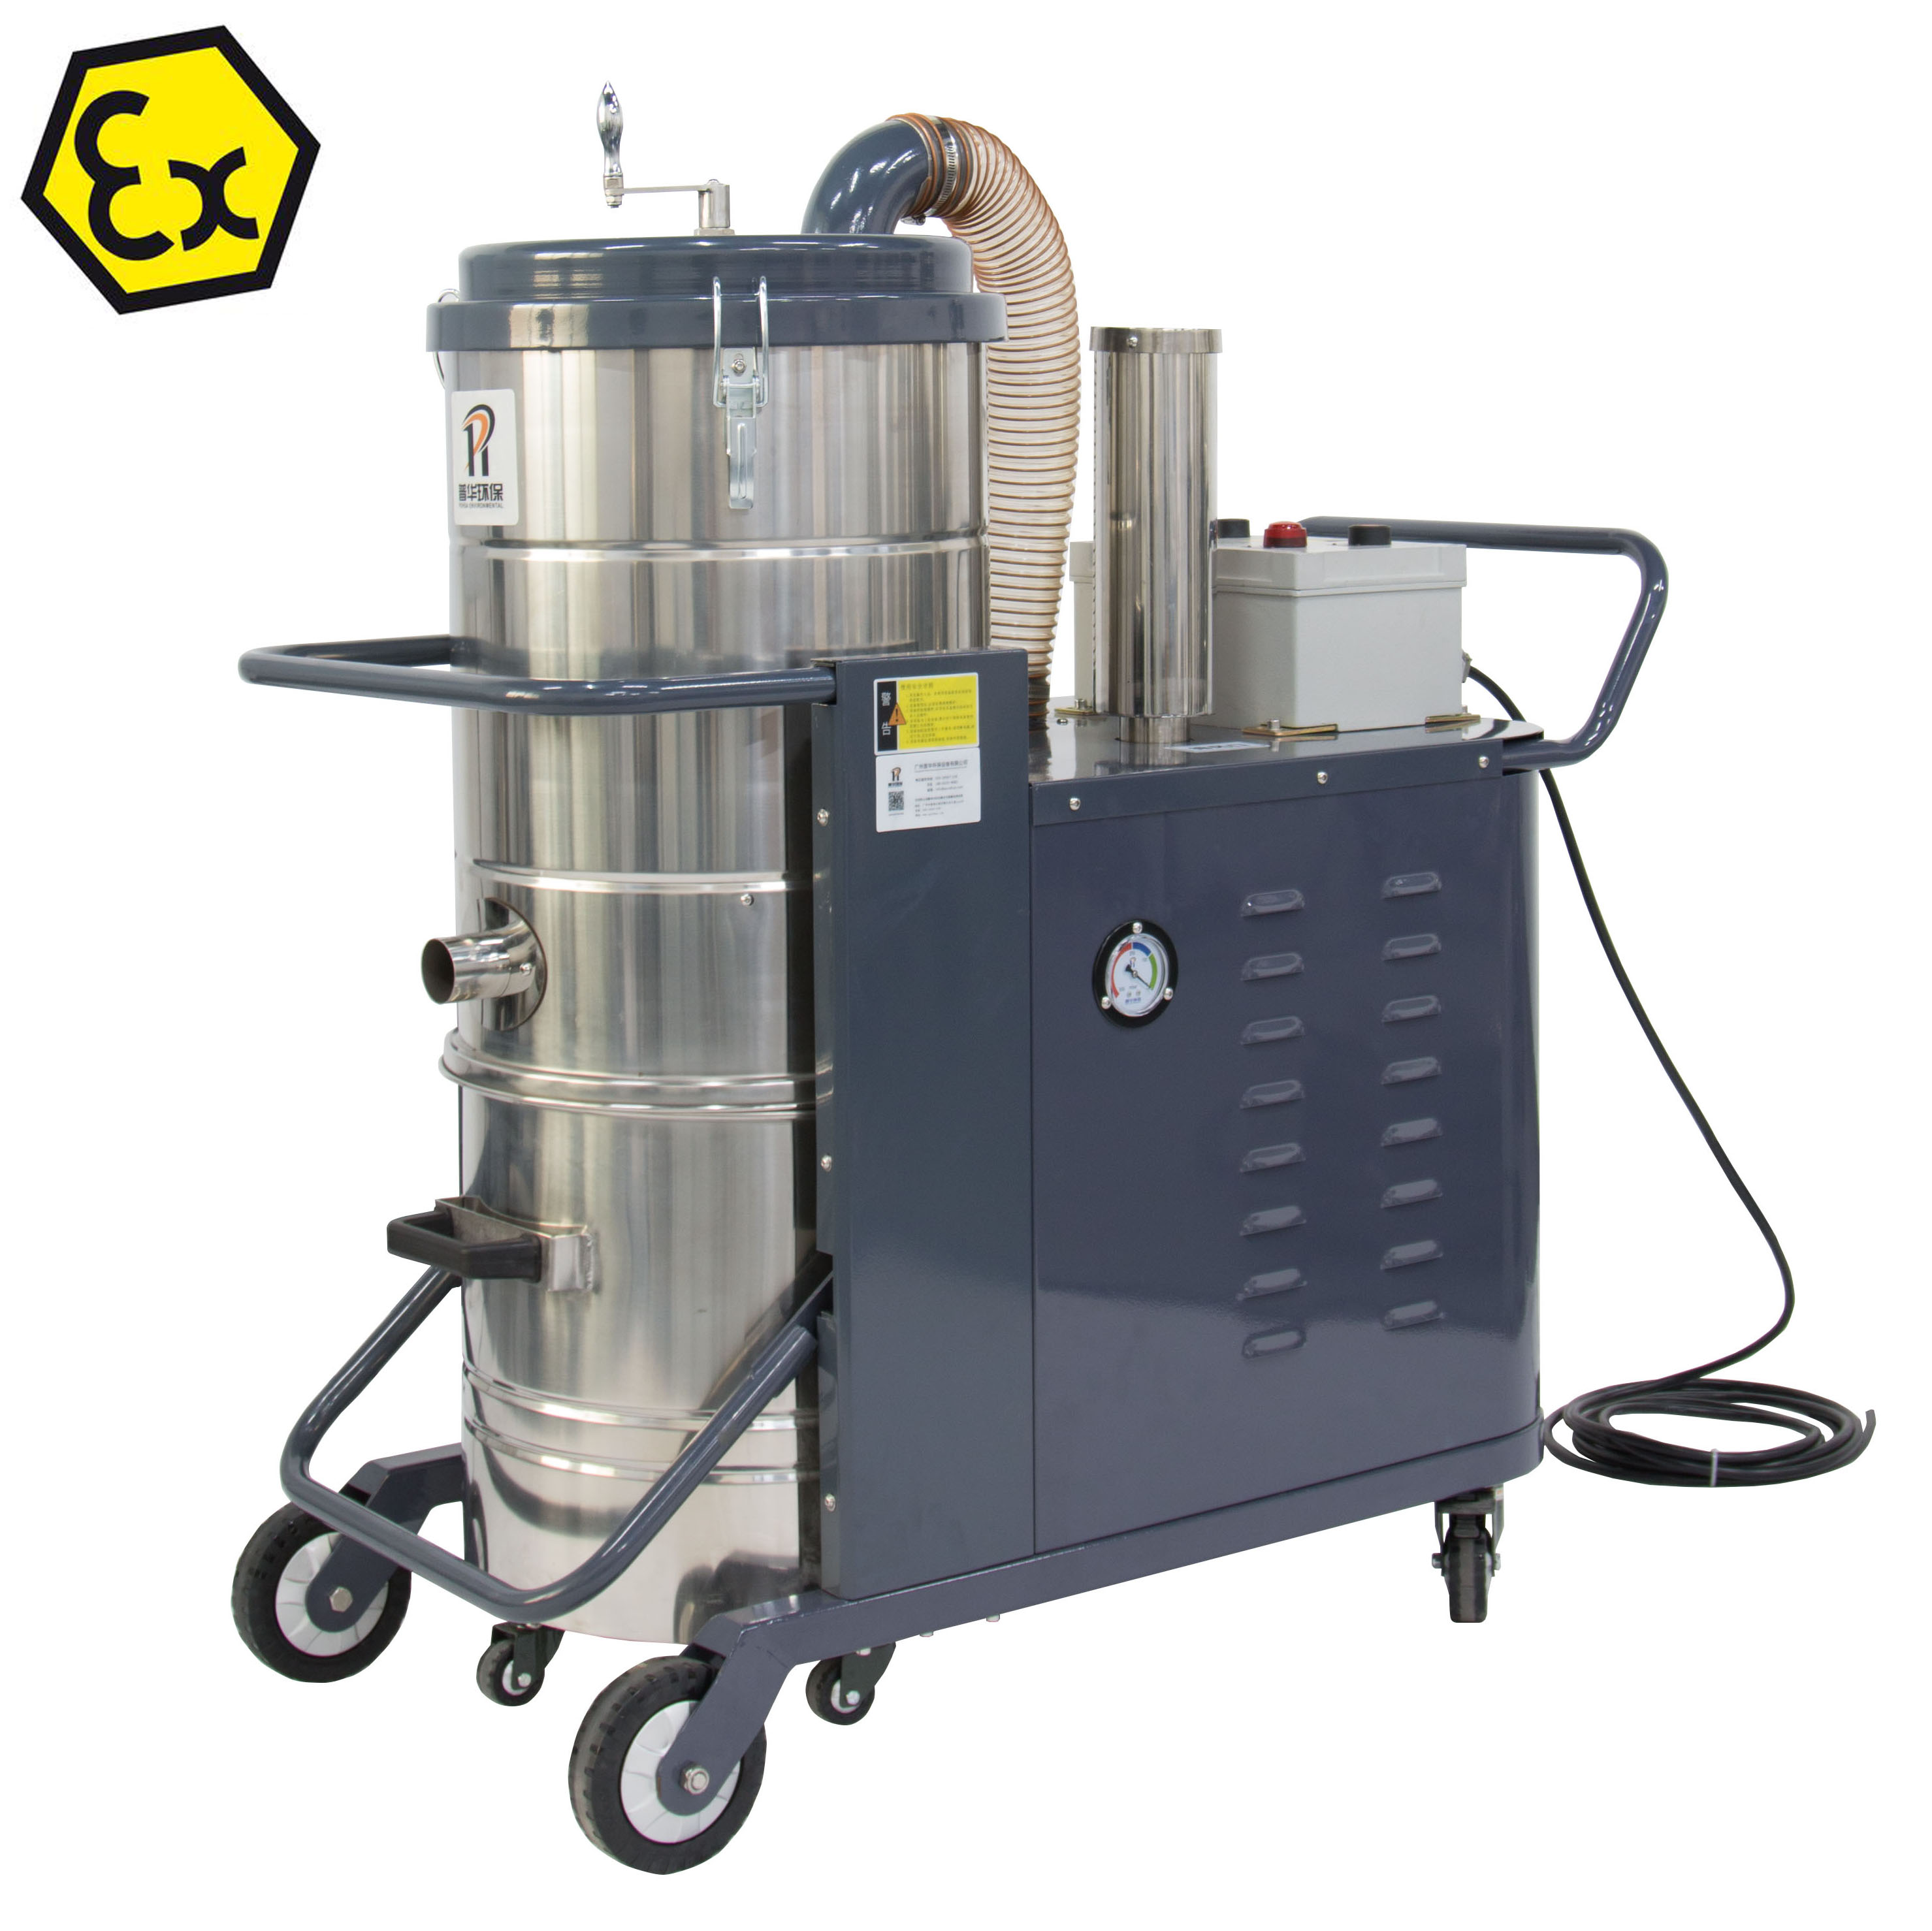 Contracted vertical explosion-proof industrial vacuum cleaner